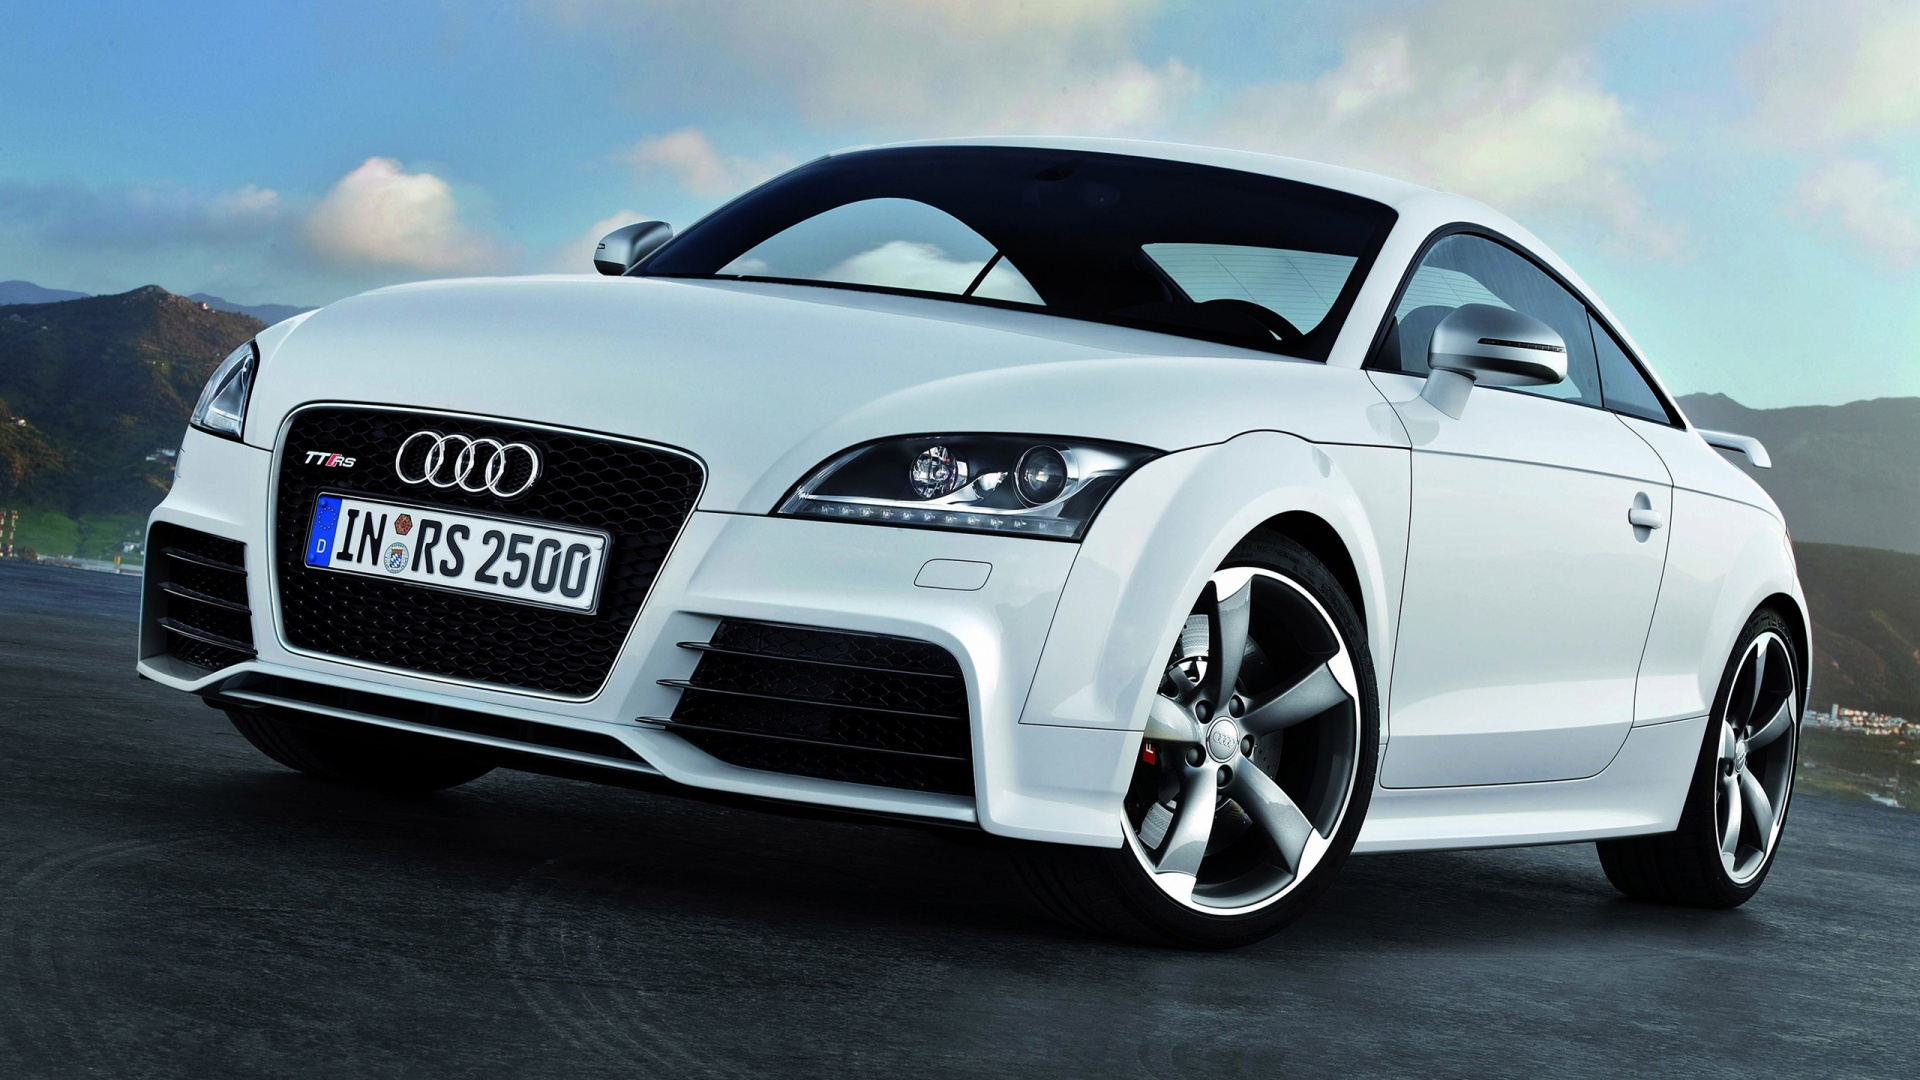 2012 Audi TT RS - High Definition Wallpapers - HD wallpapers